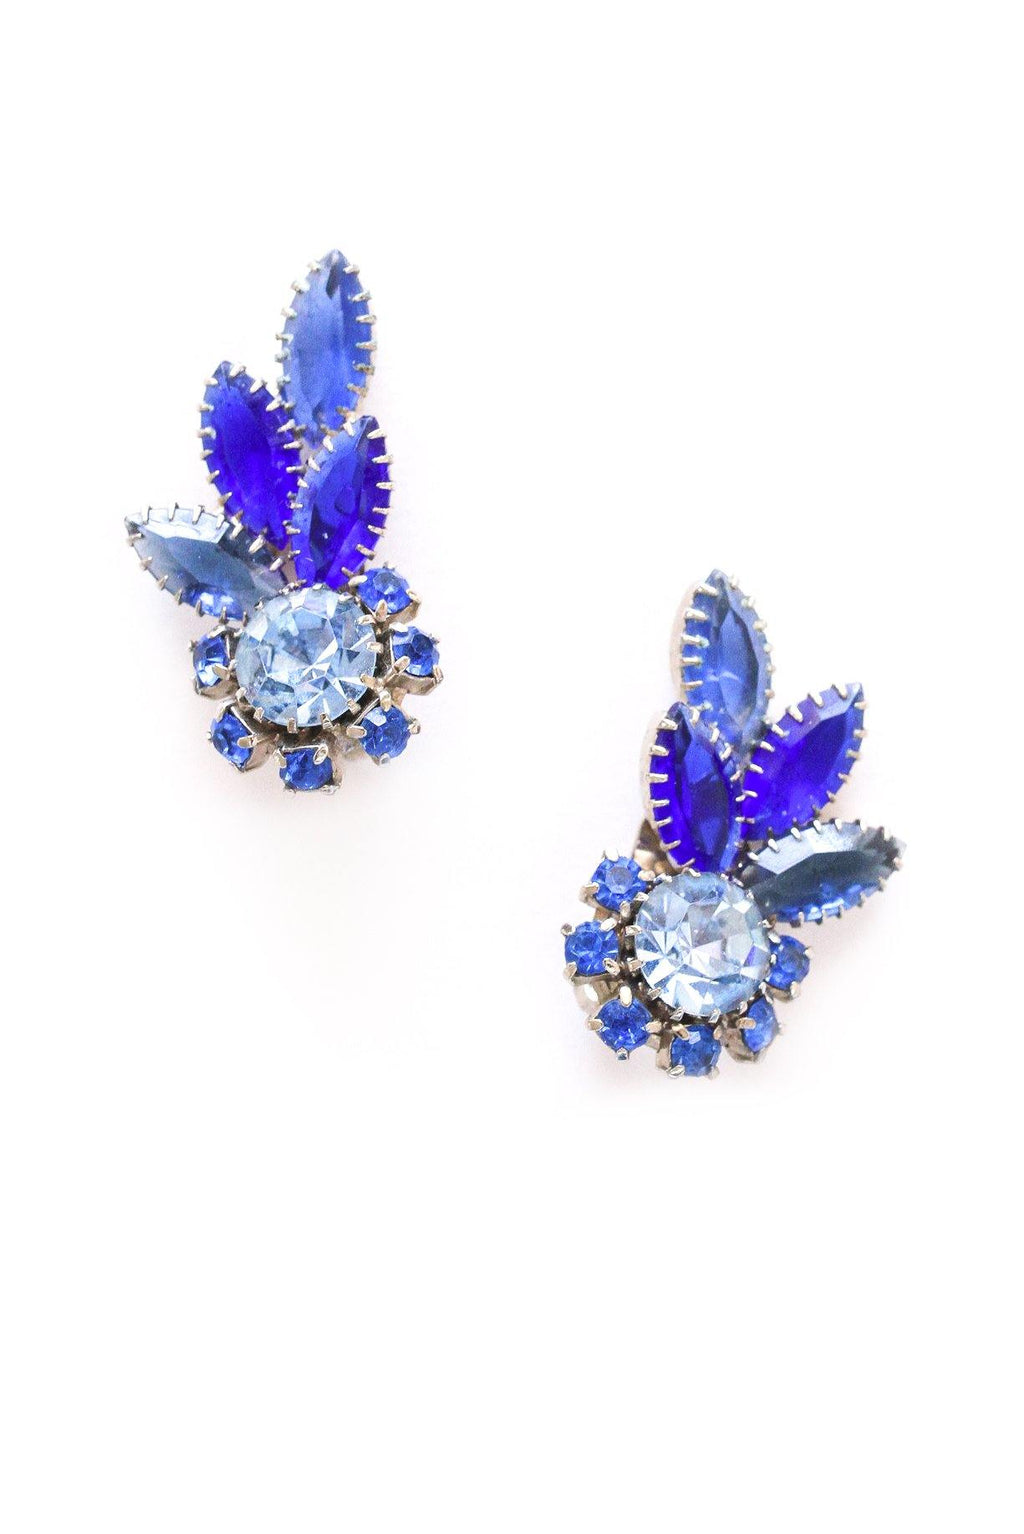 Statement Blue Rhinestone Crawler Clip-on Earrings